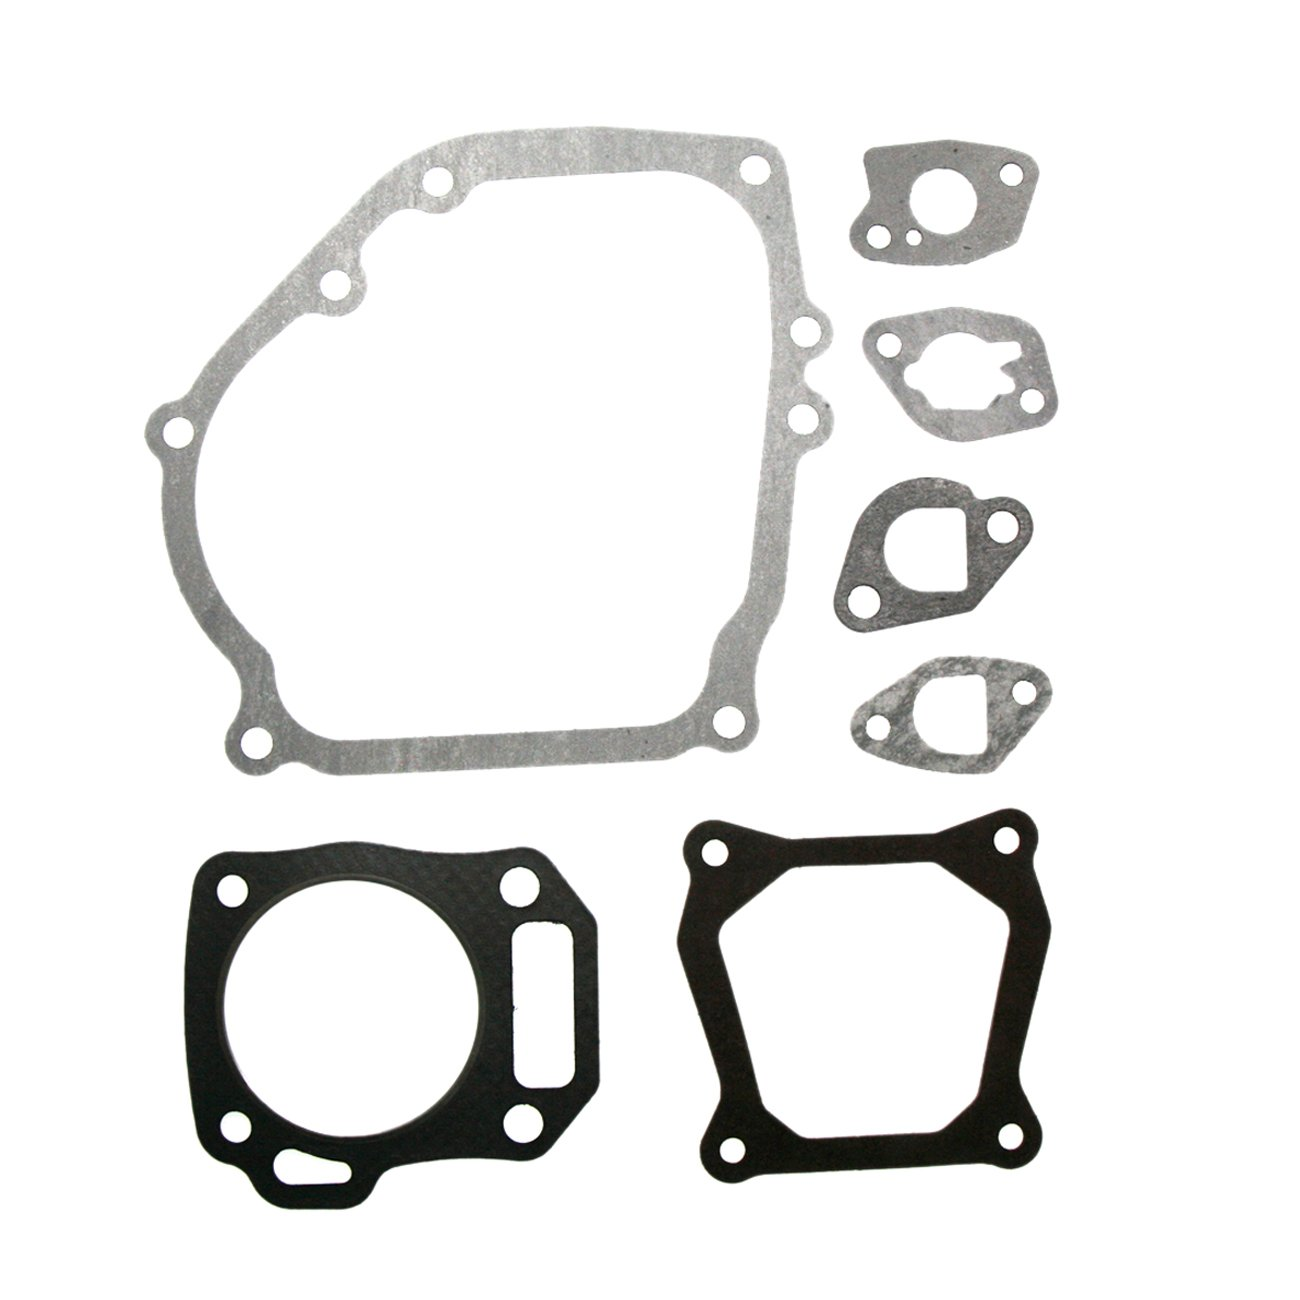 JRL New Cylinder Head Full Gasket Kit for Honda GX160 GX200 5.5hp 6.5hp